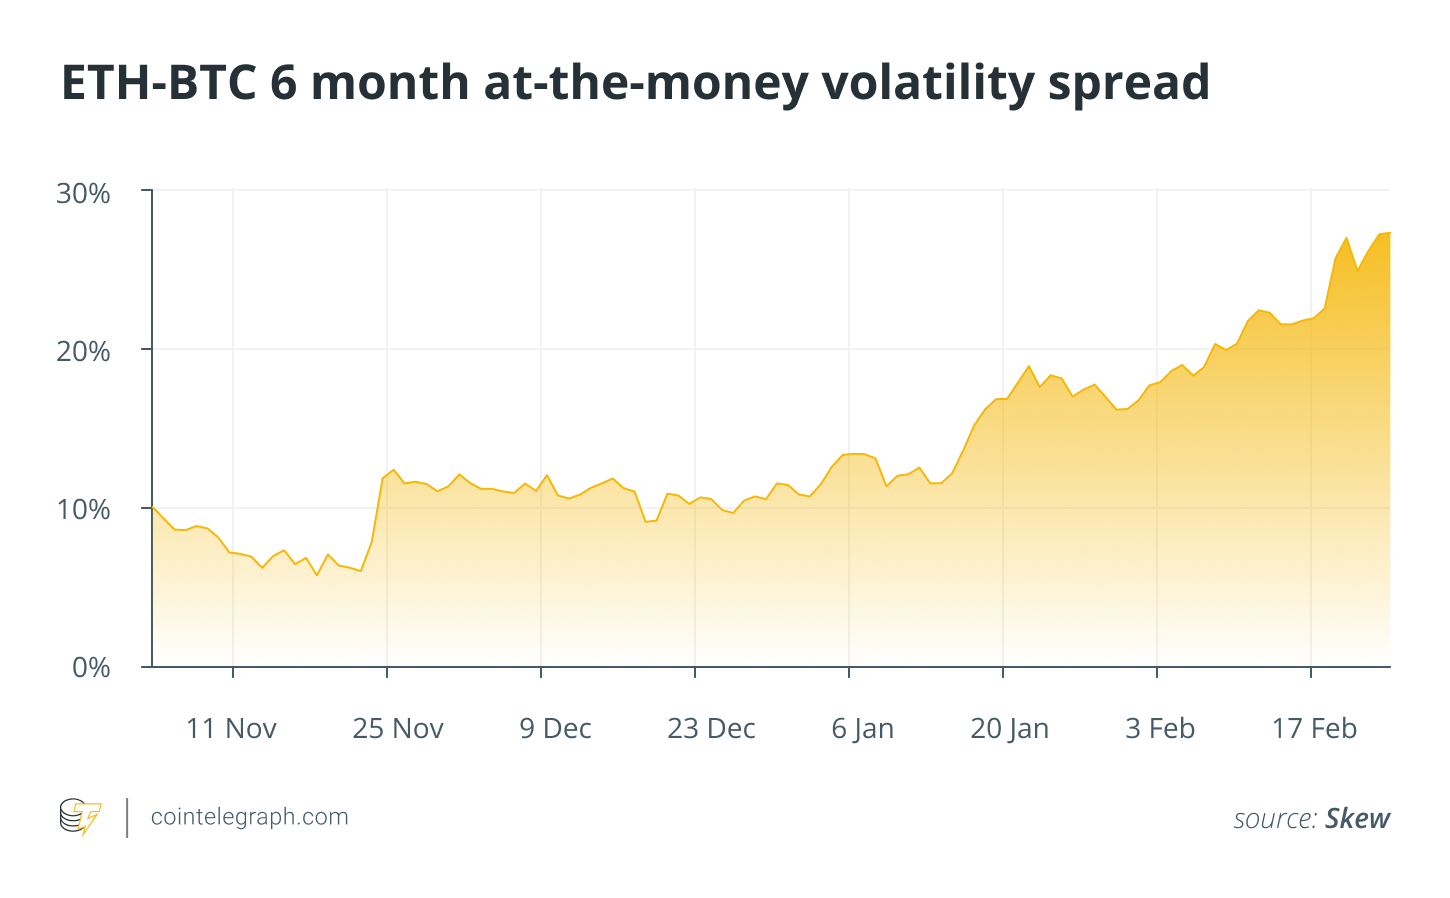 ETH-BTC 6 month at-the-money volatility spread